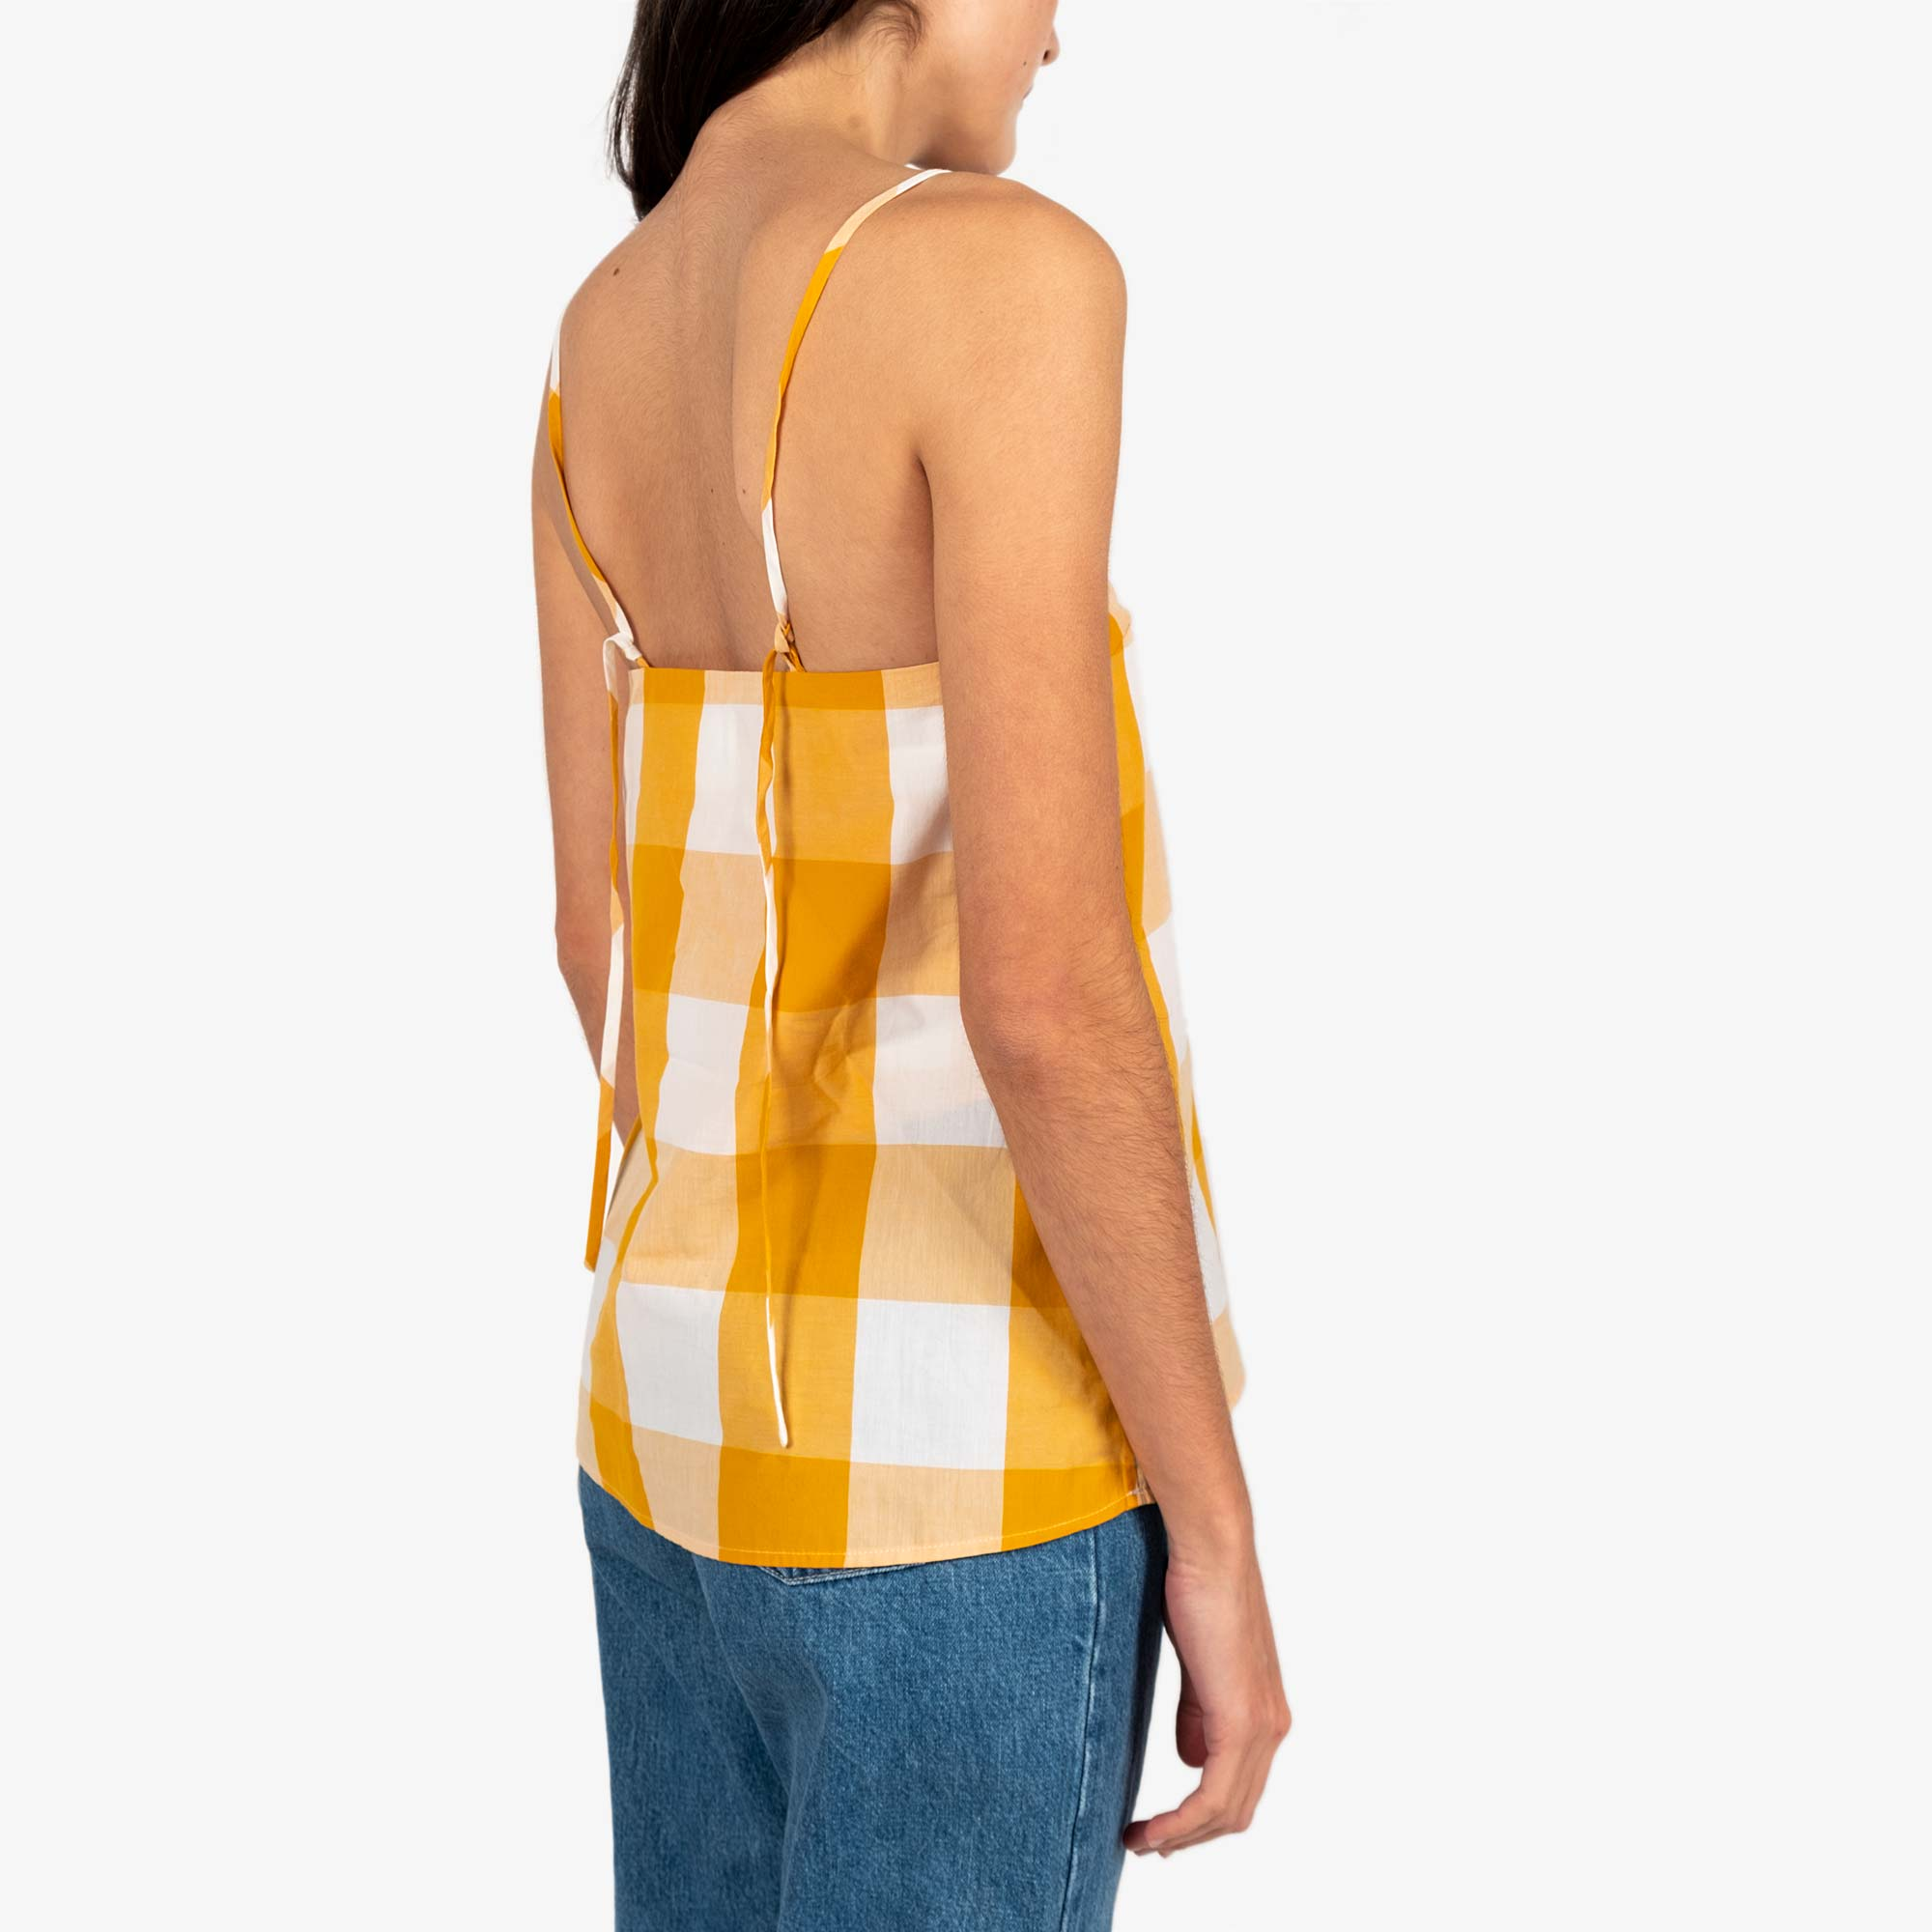 Kowtow Stencil Top - Daisy Check 4